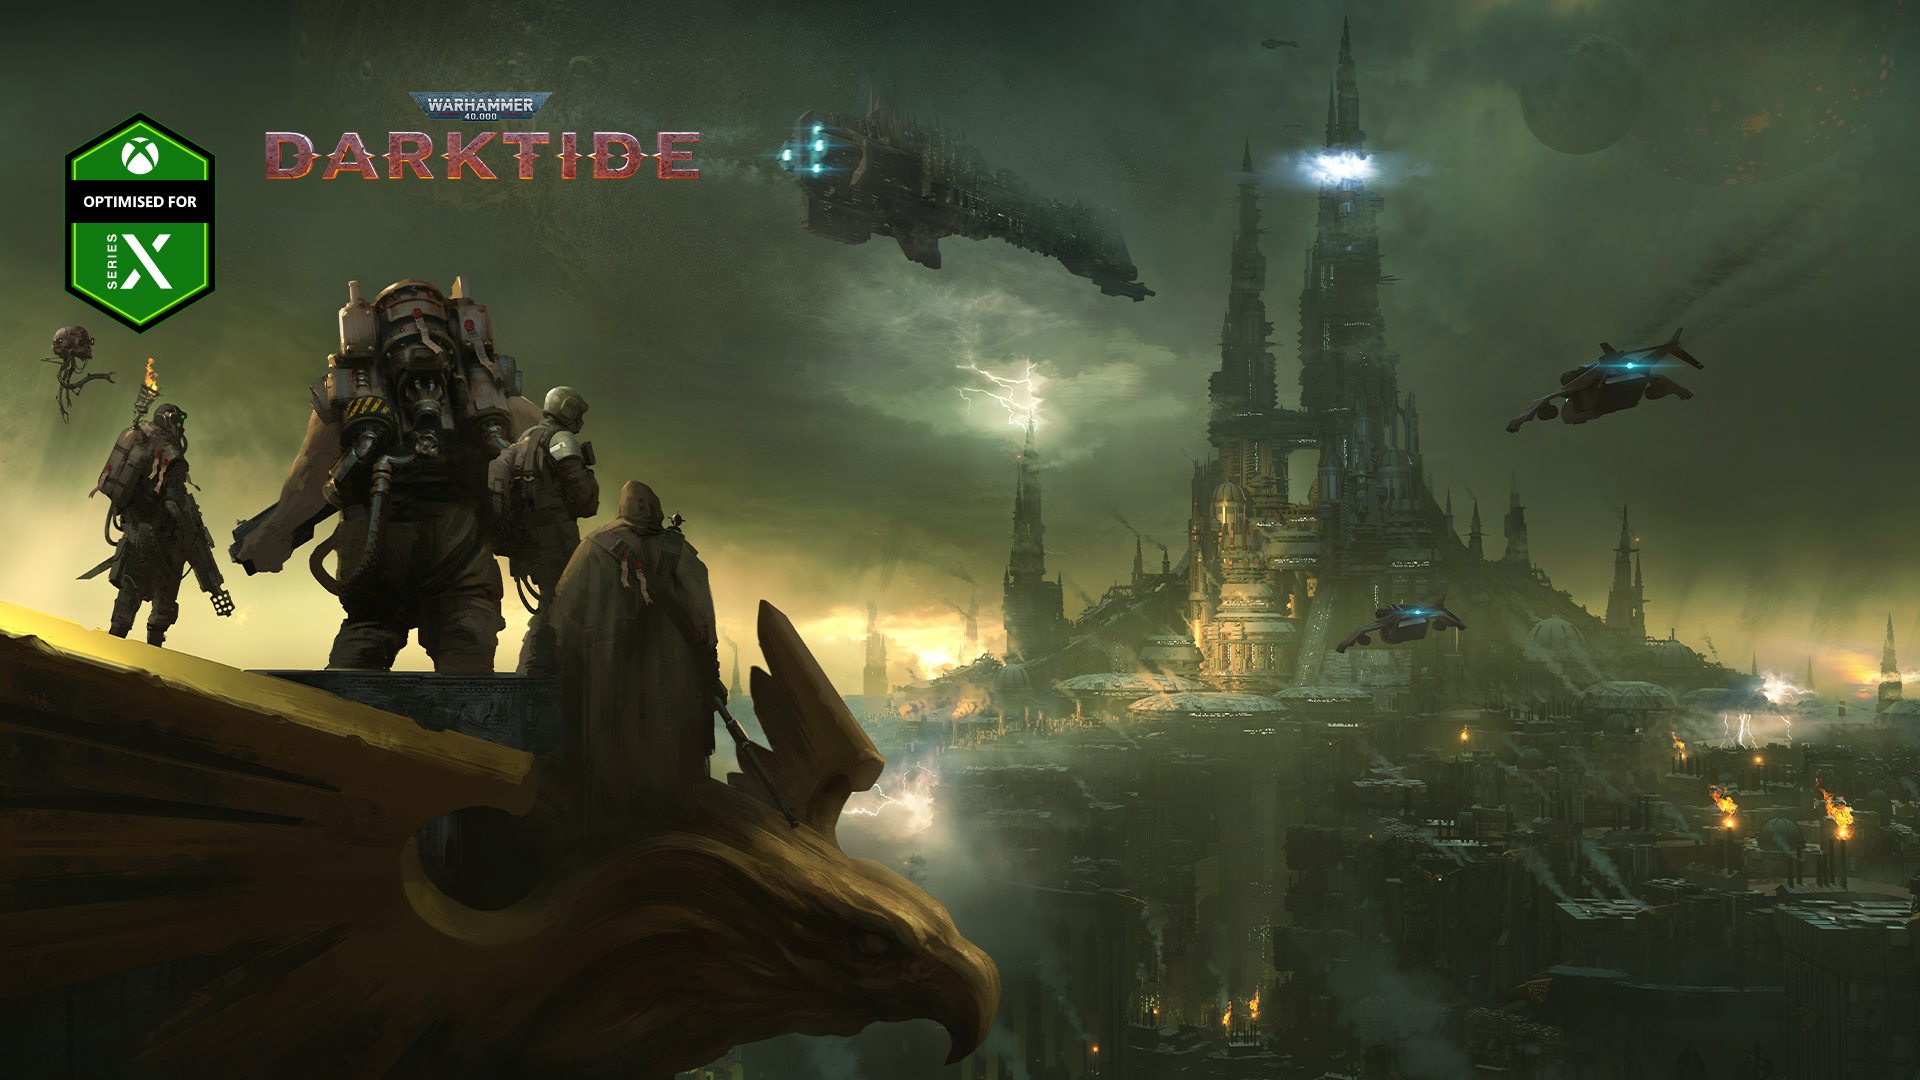 Optimised for Series X, Warhammer 40,000 Darktide, a group of characters overlook a city shrouded in fog.